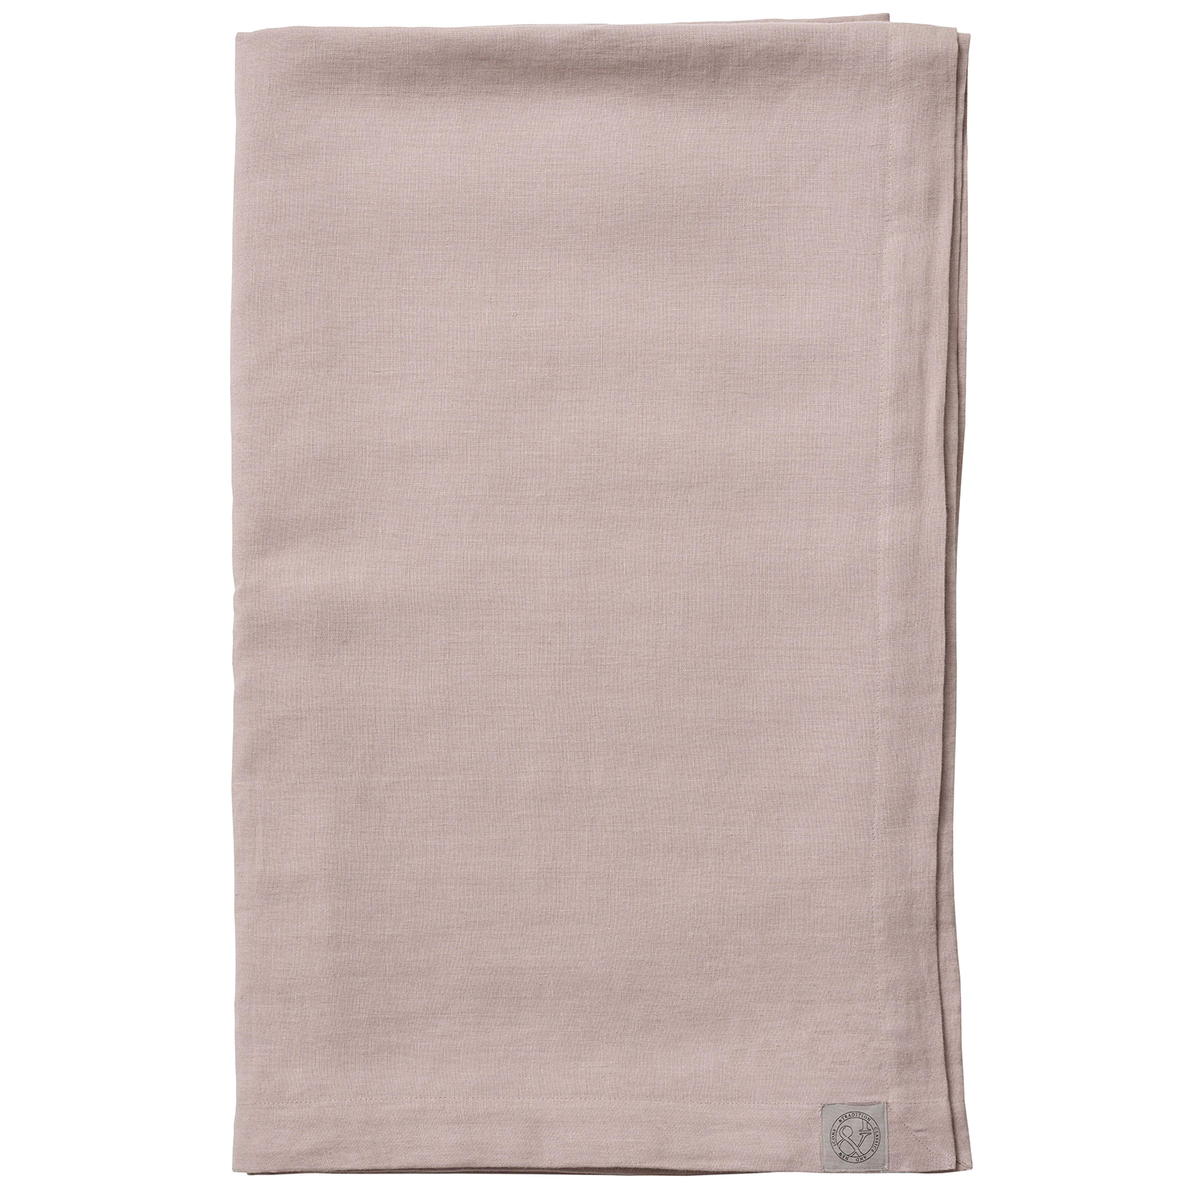 &Tradition Collect Linen SC31 bedspread, 240 x 260 cm, powder from &Tradition